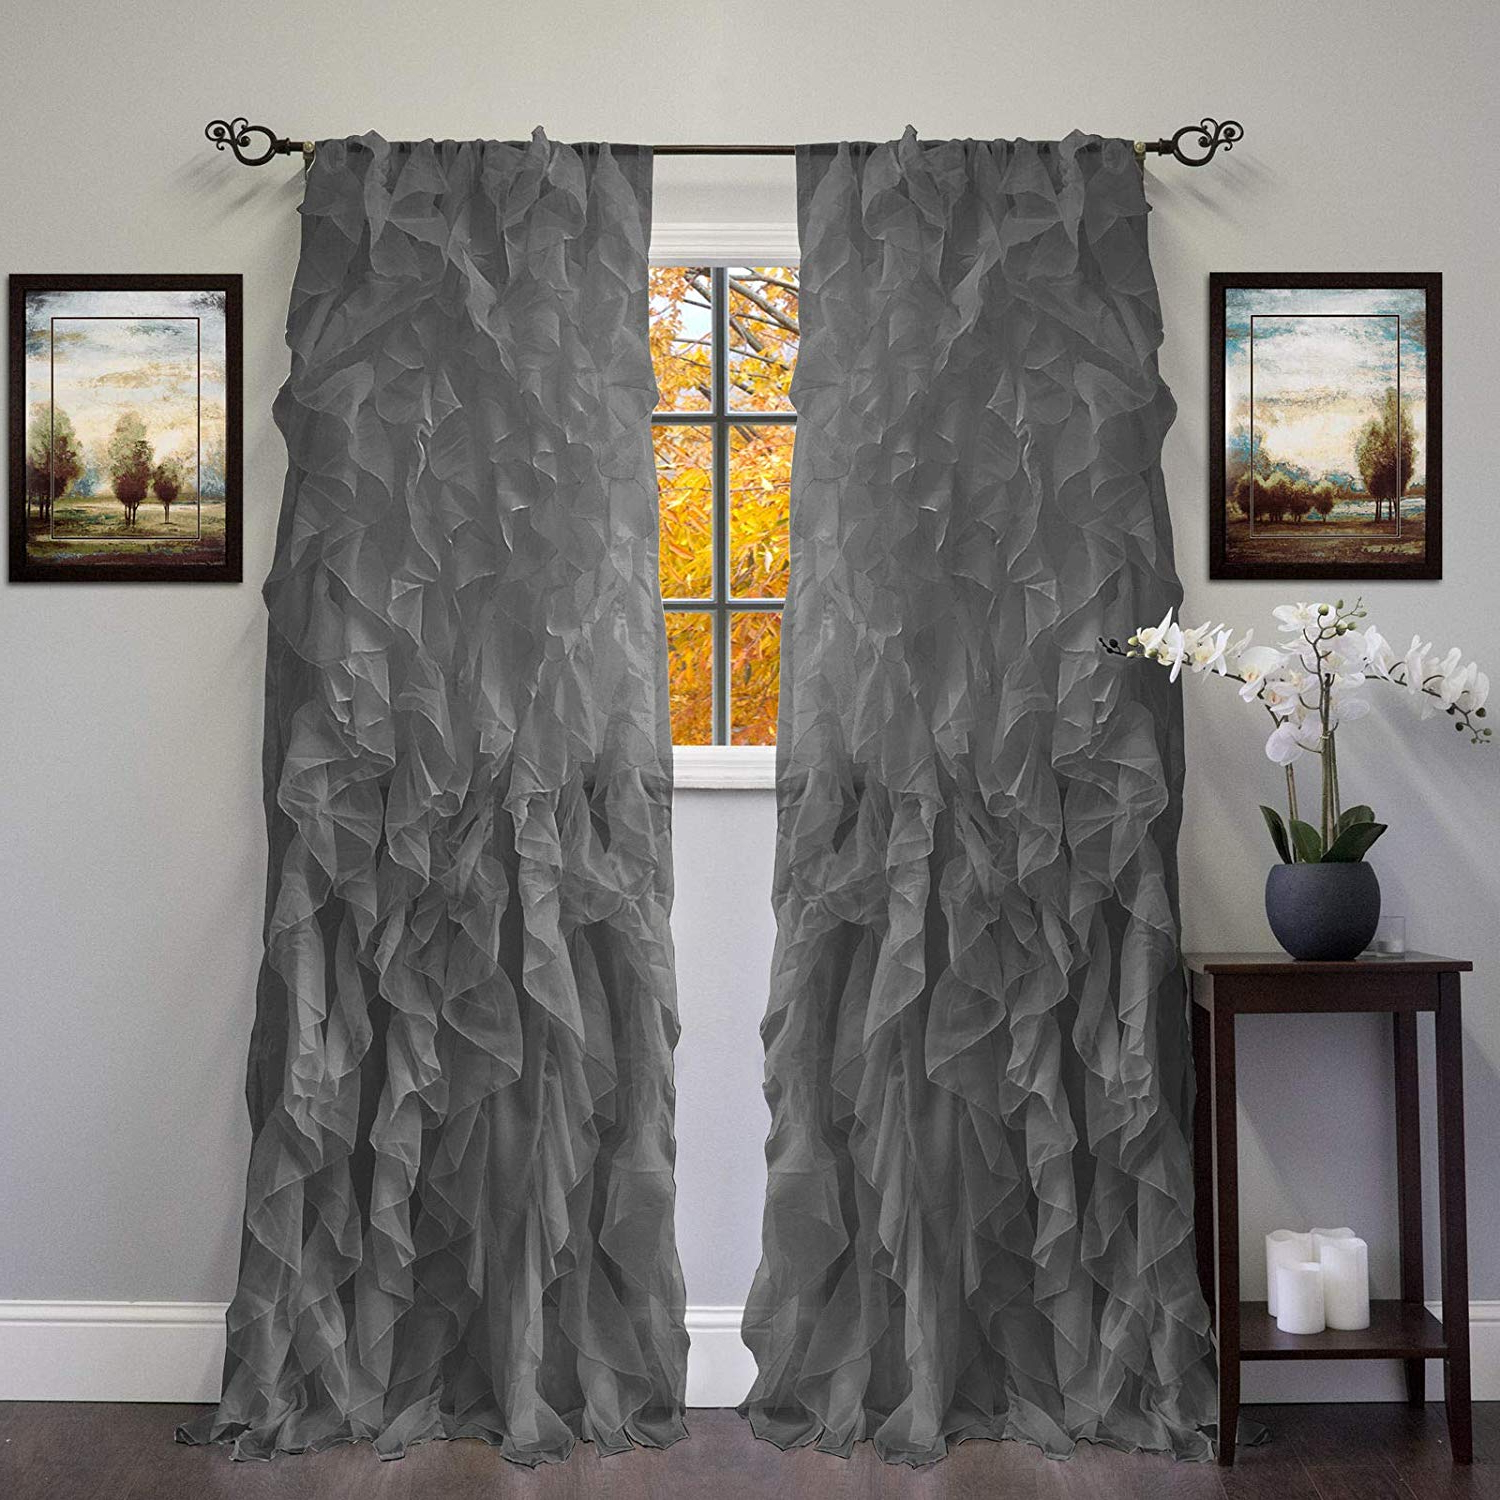 Most Up To Date Amazon: Dn Lin New Chic Sheer Voile Vertical Ruffled Inside Chic Sheer Voile Vertical Ruffled Window Curtain Tiers (View 2 of 20)